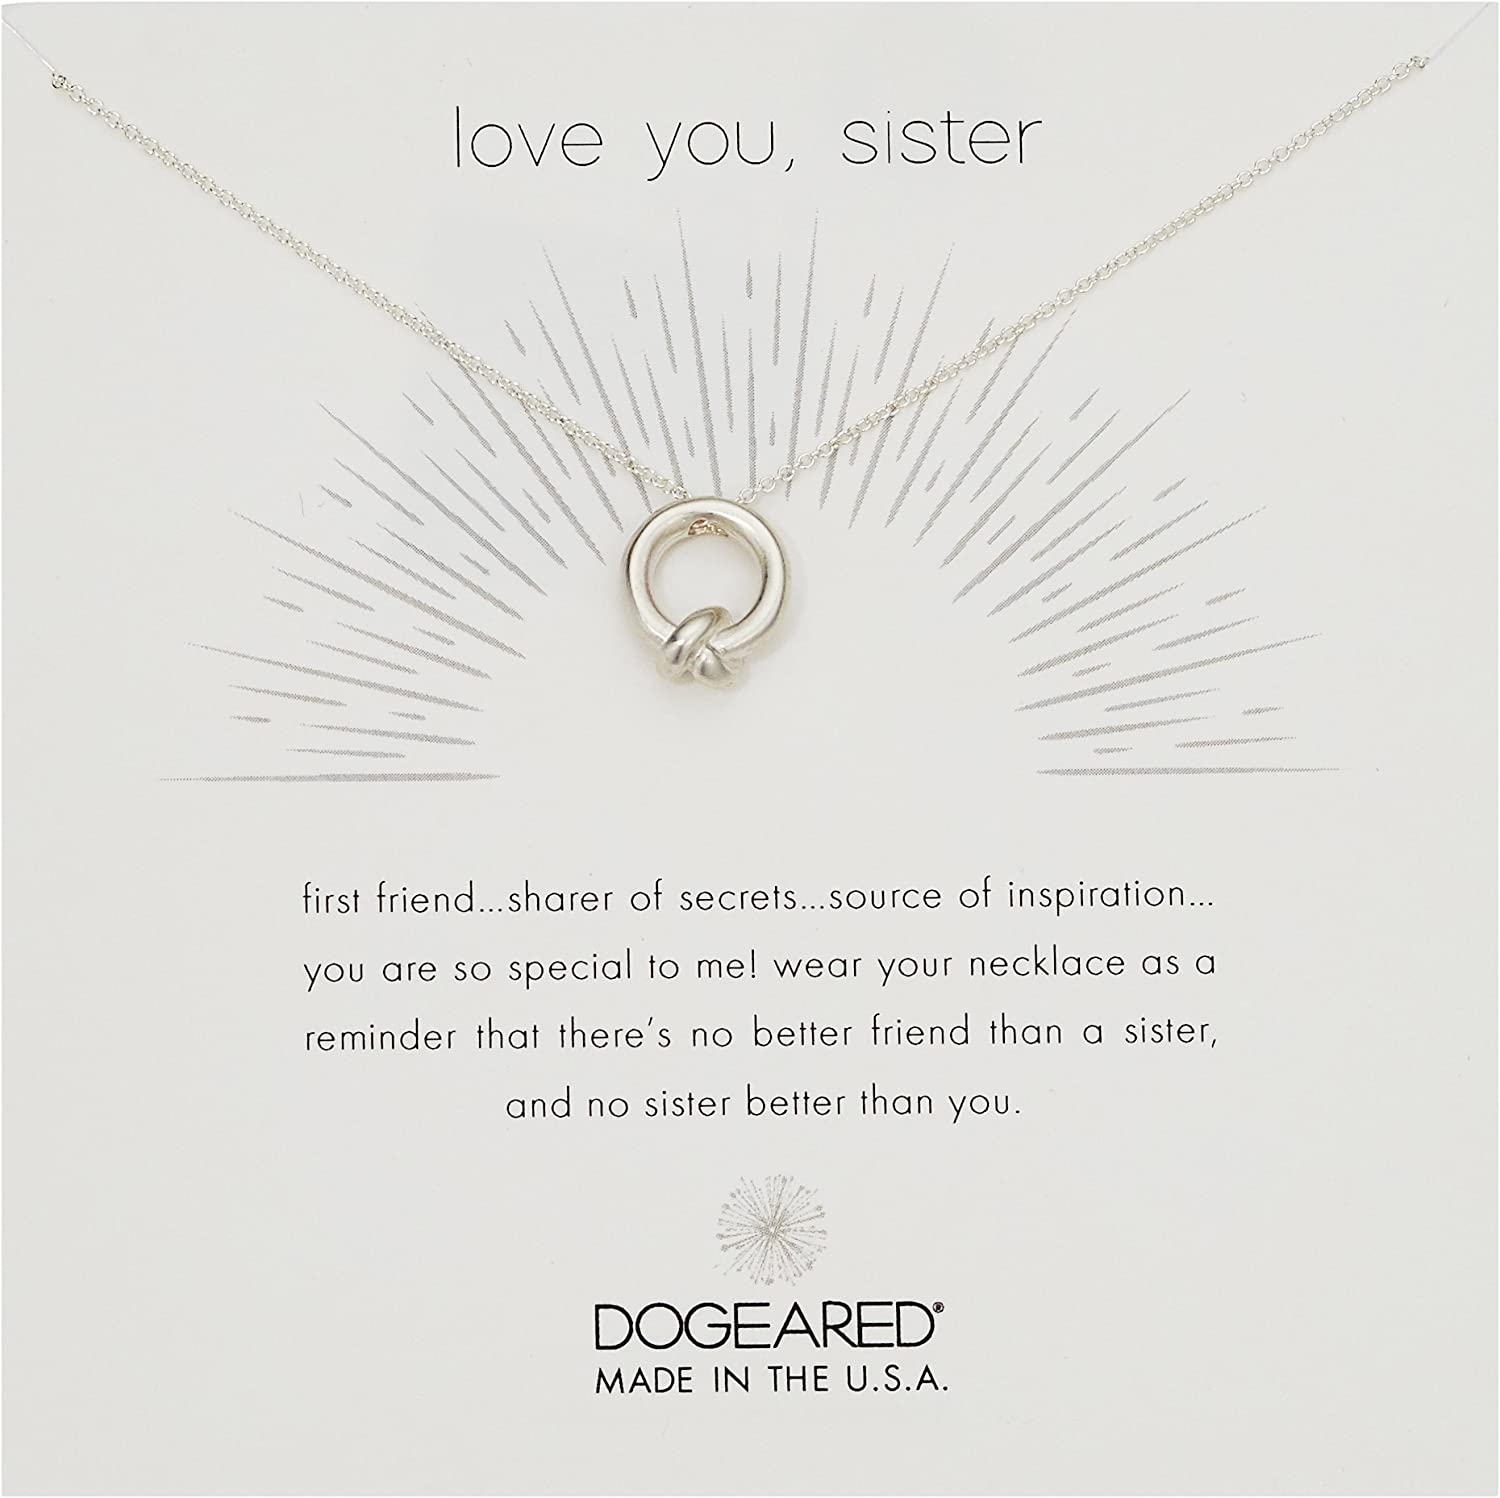 Dogeared depot Love You Sister Charm Necklace Boston Mall Knot Together